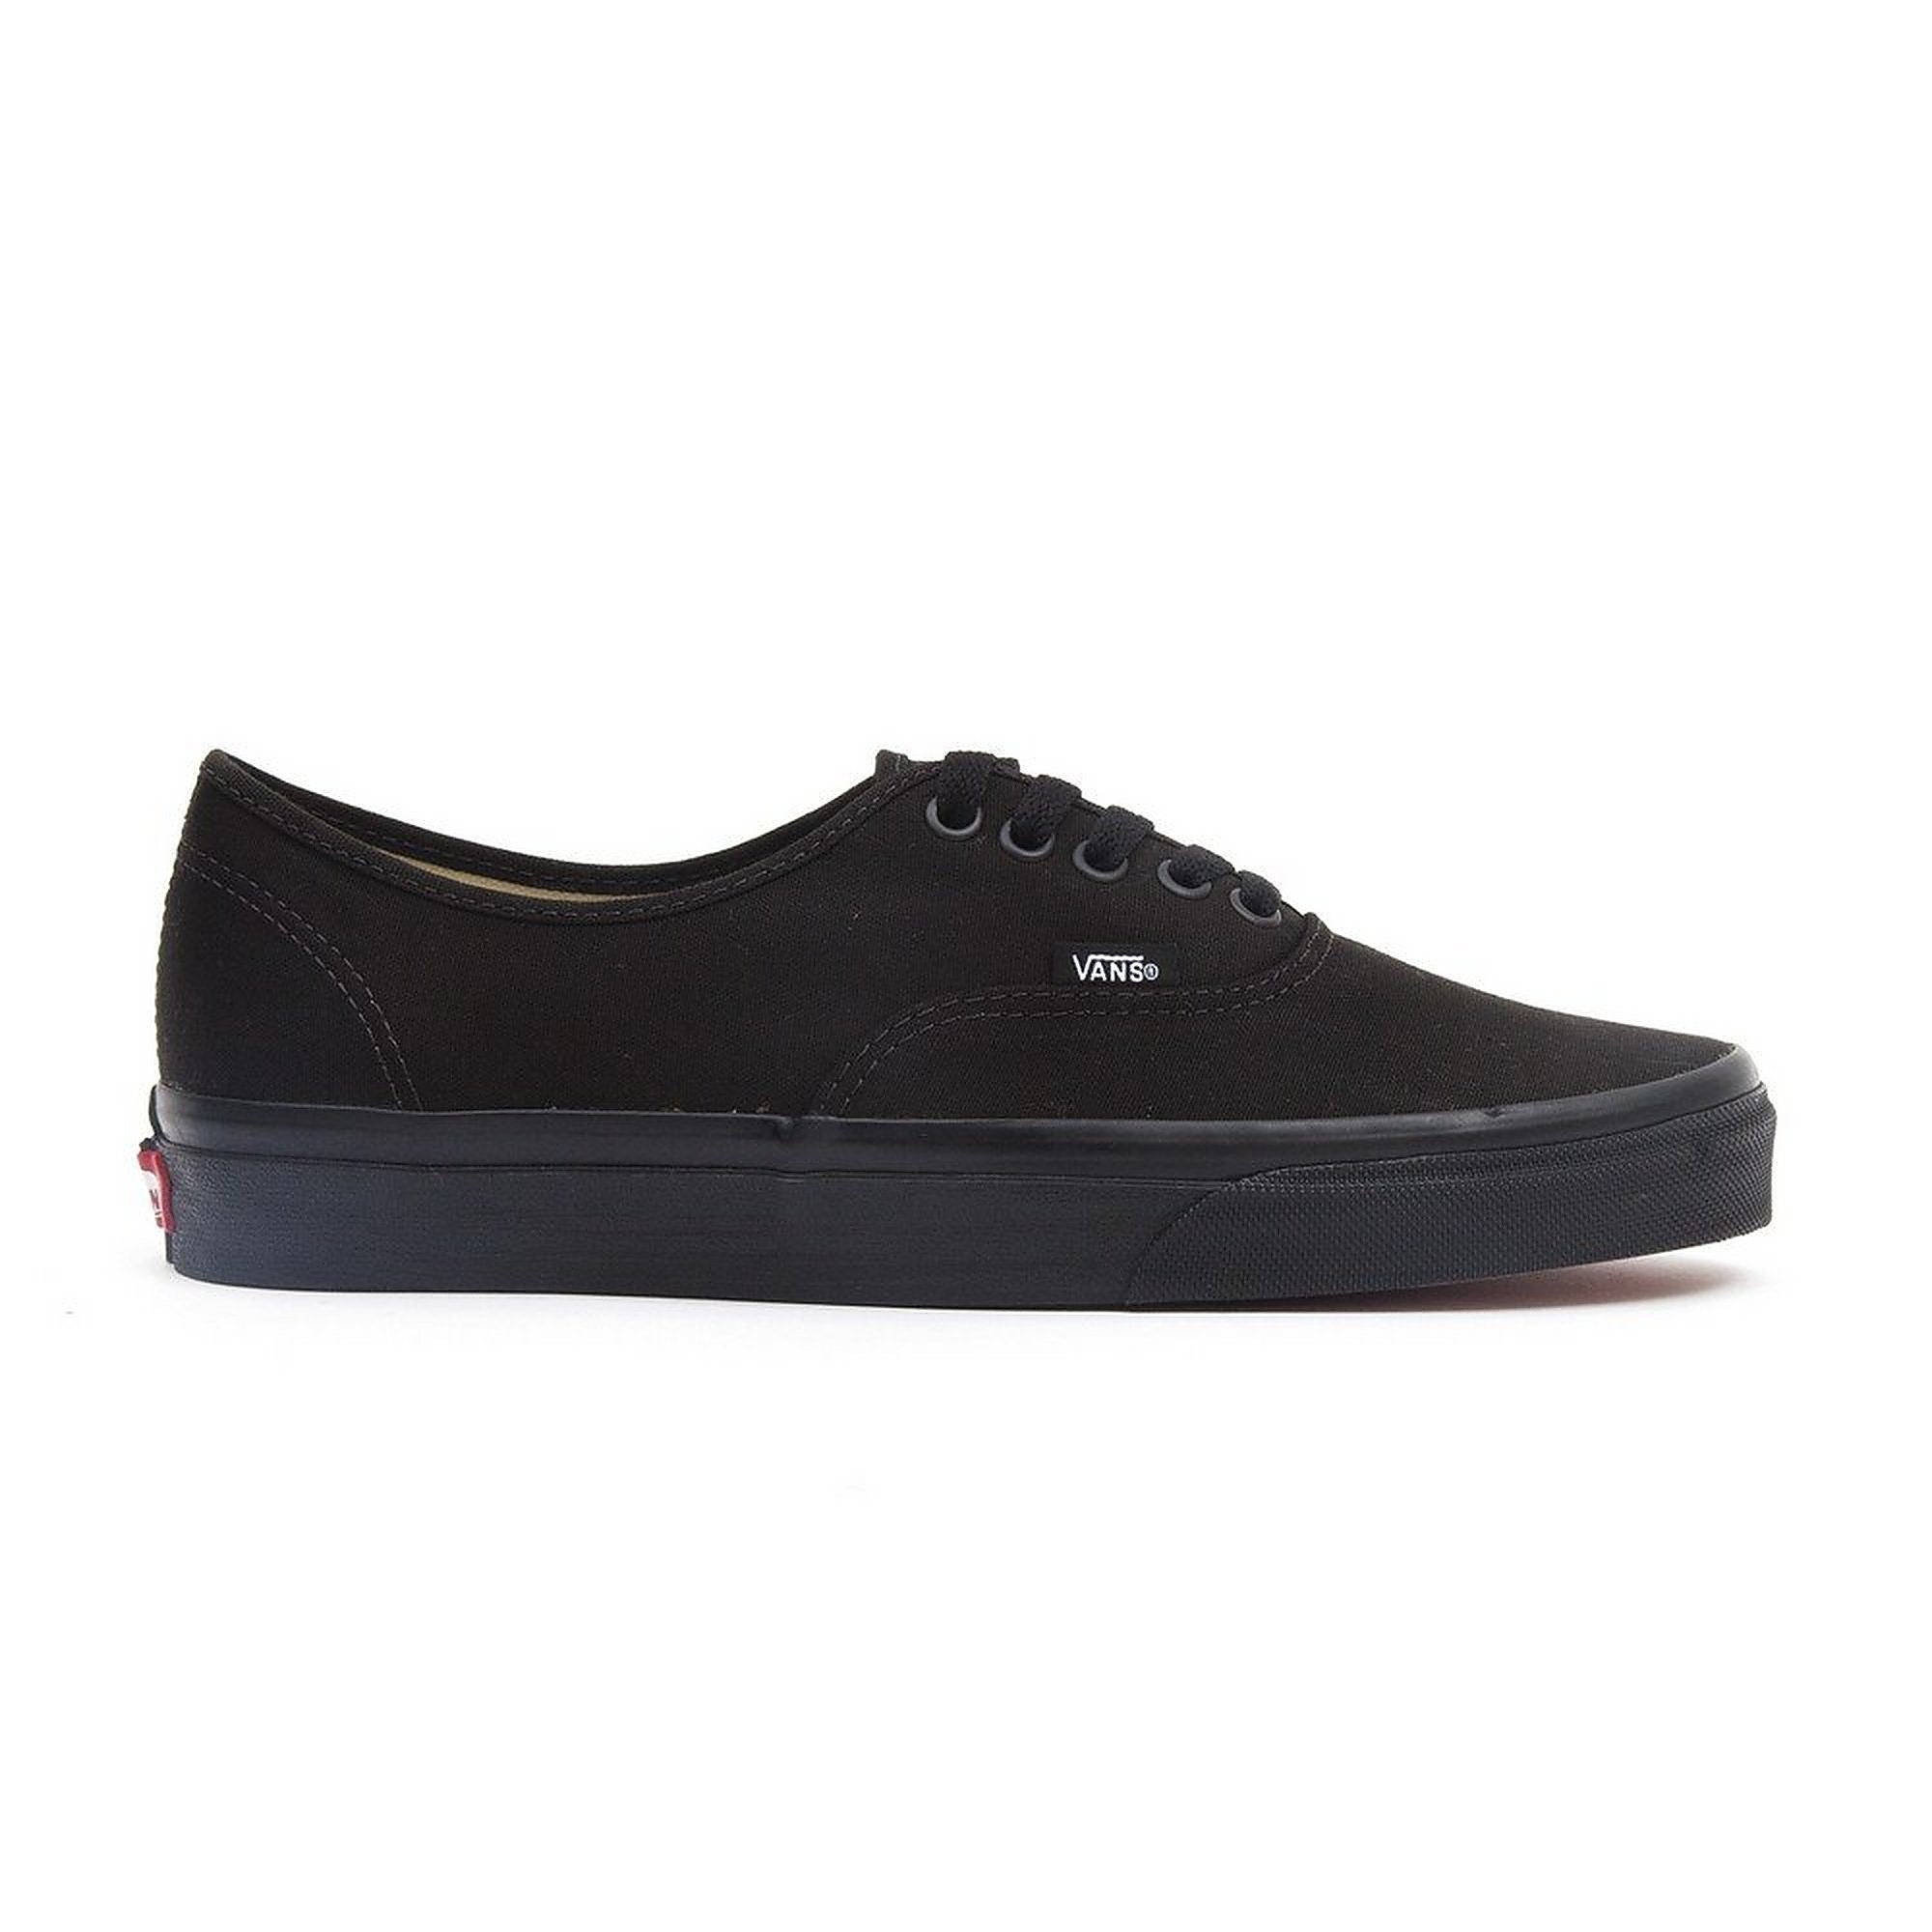 Vans Mens Authentic Trainers - Black